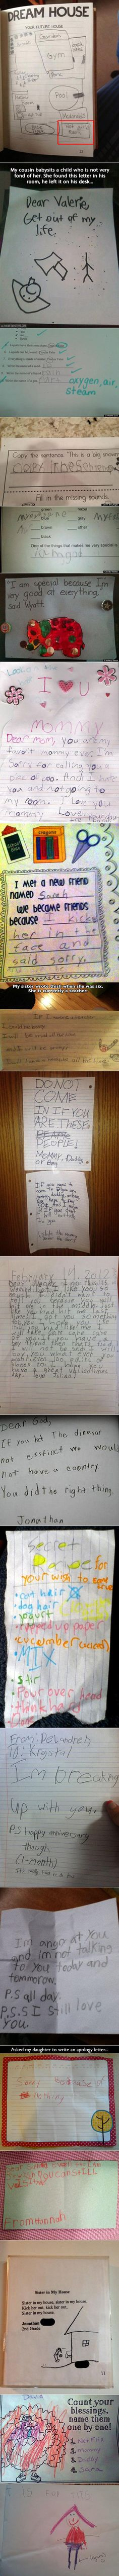 Kids are the greatest.